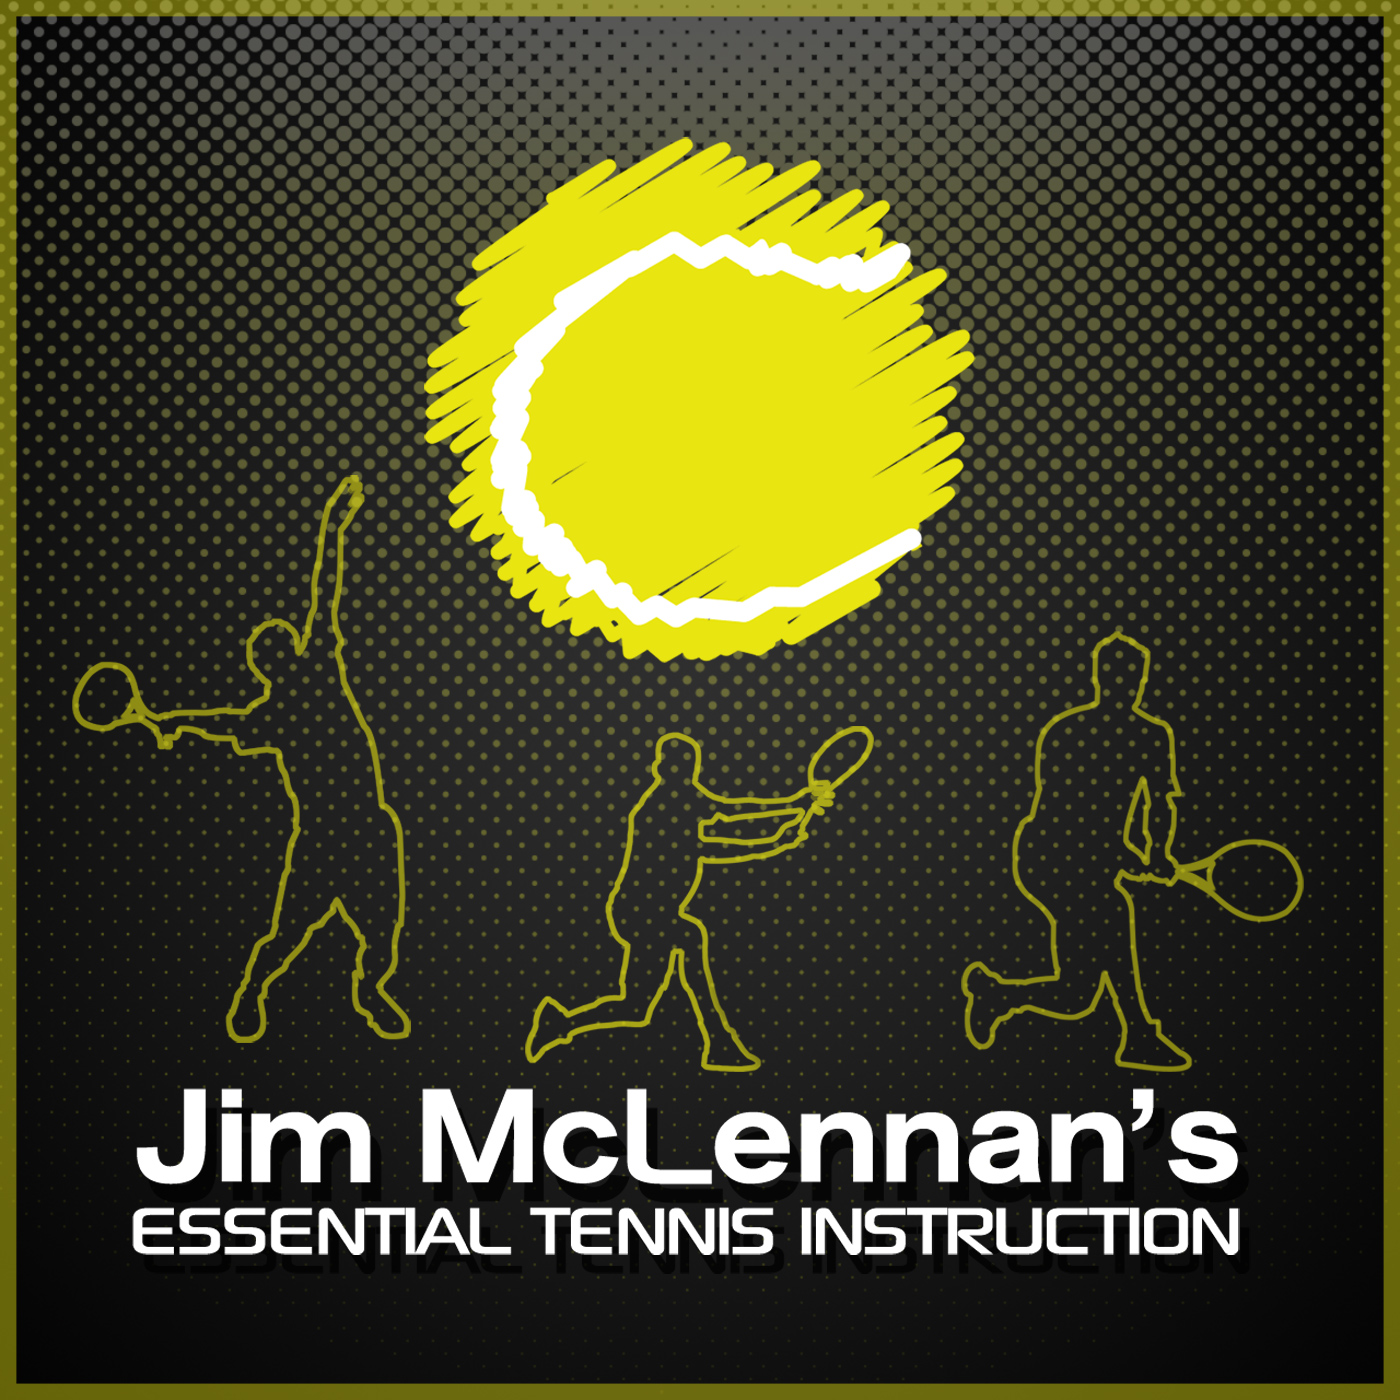 Jim McLennan's Essential Tennis Instruction